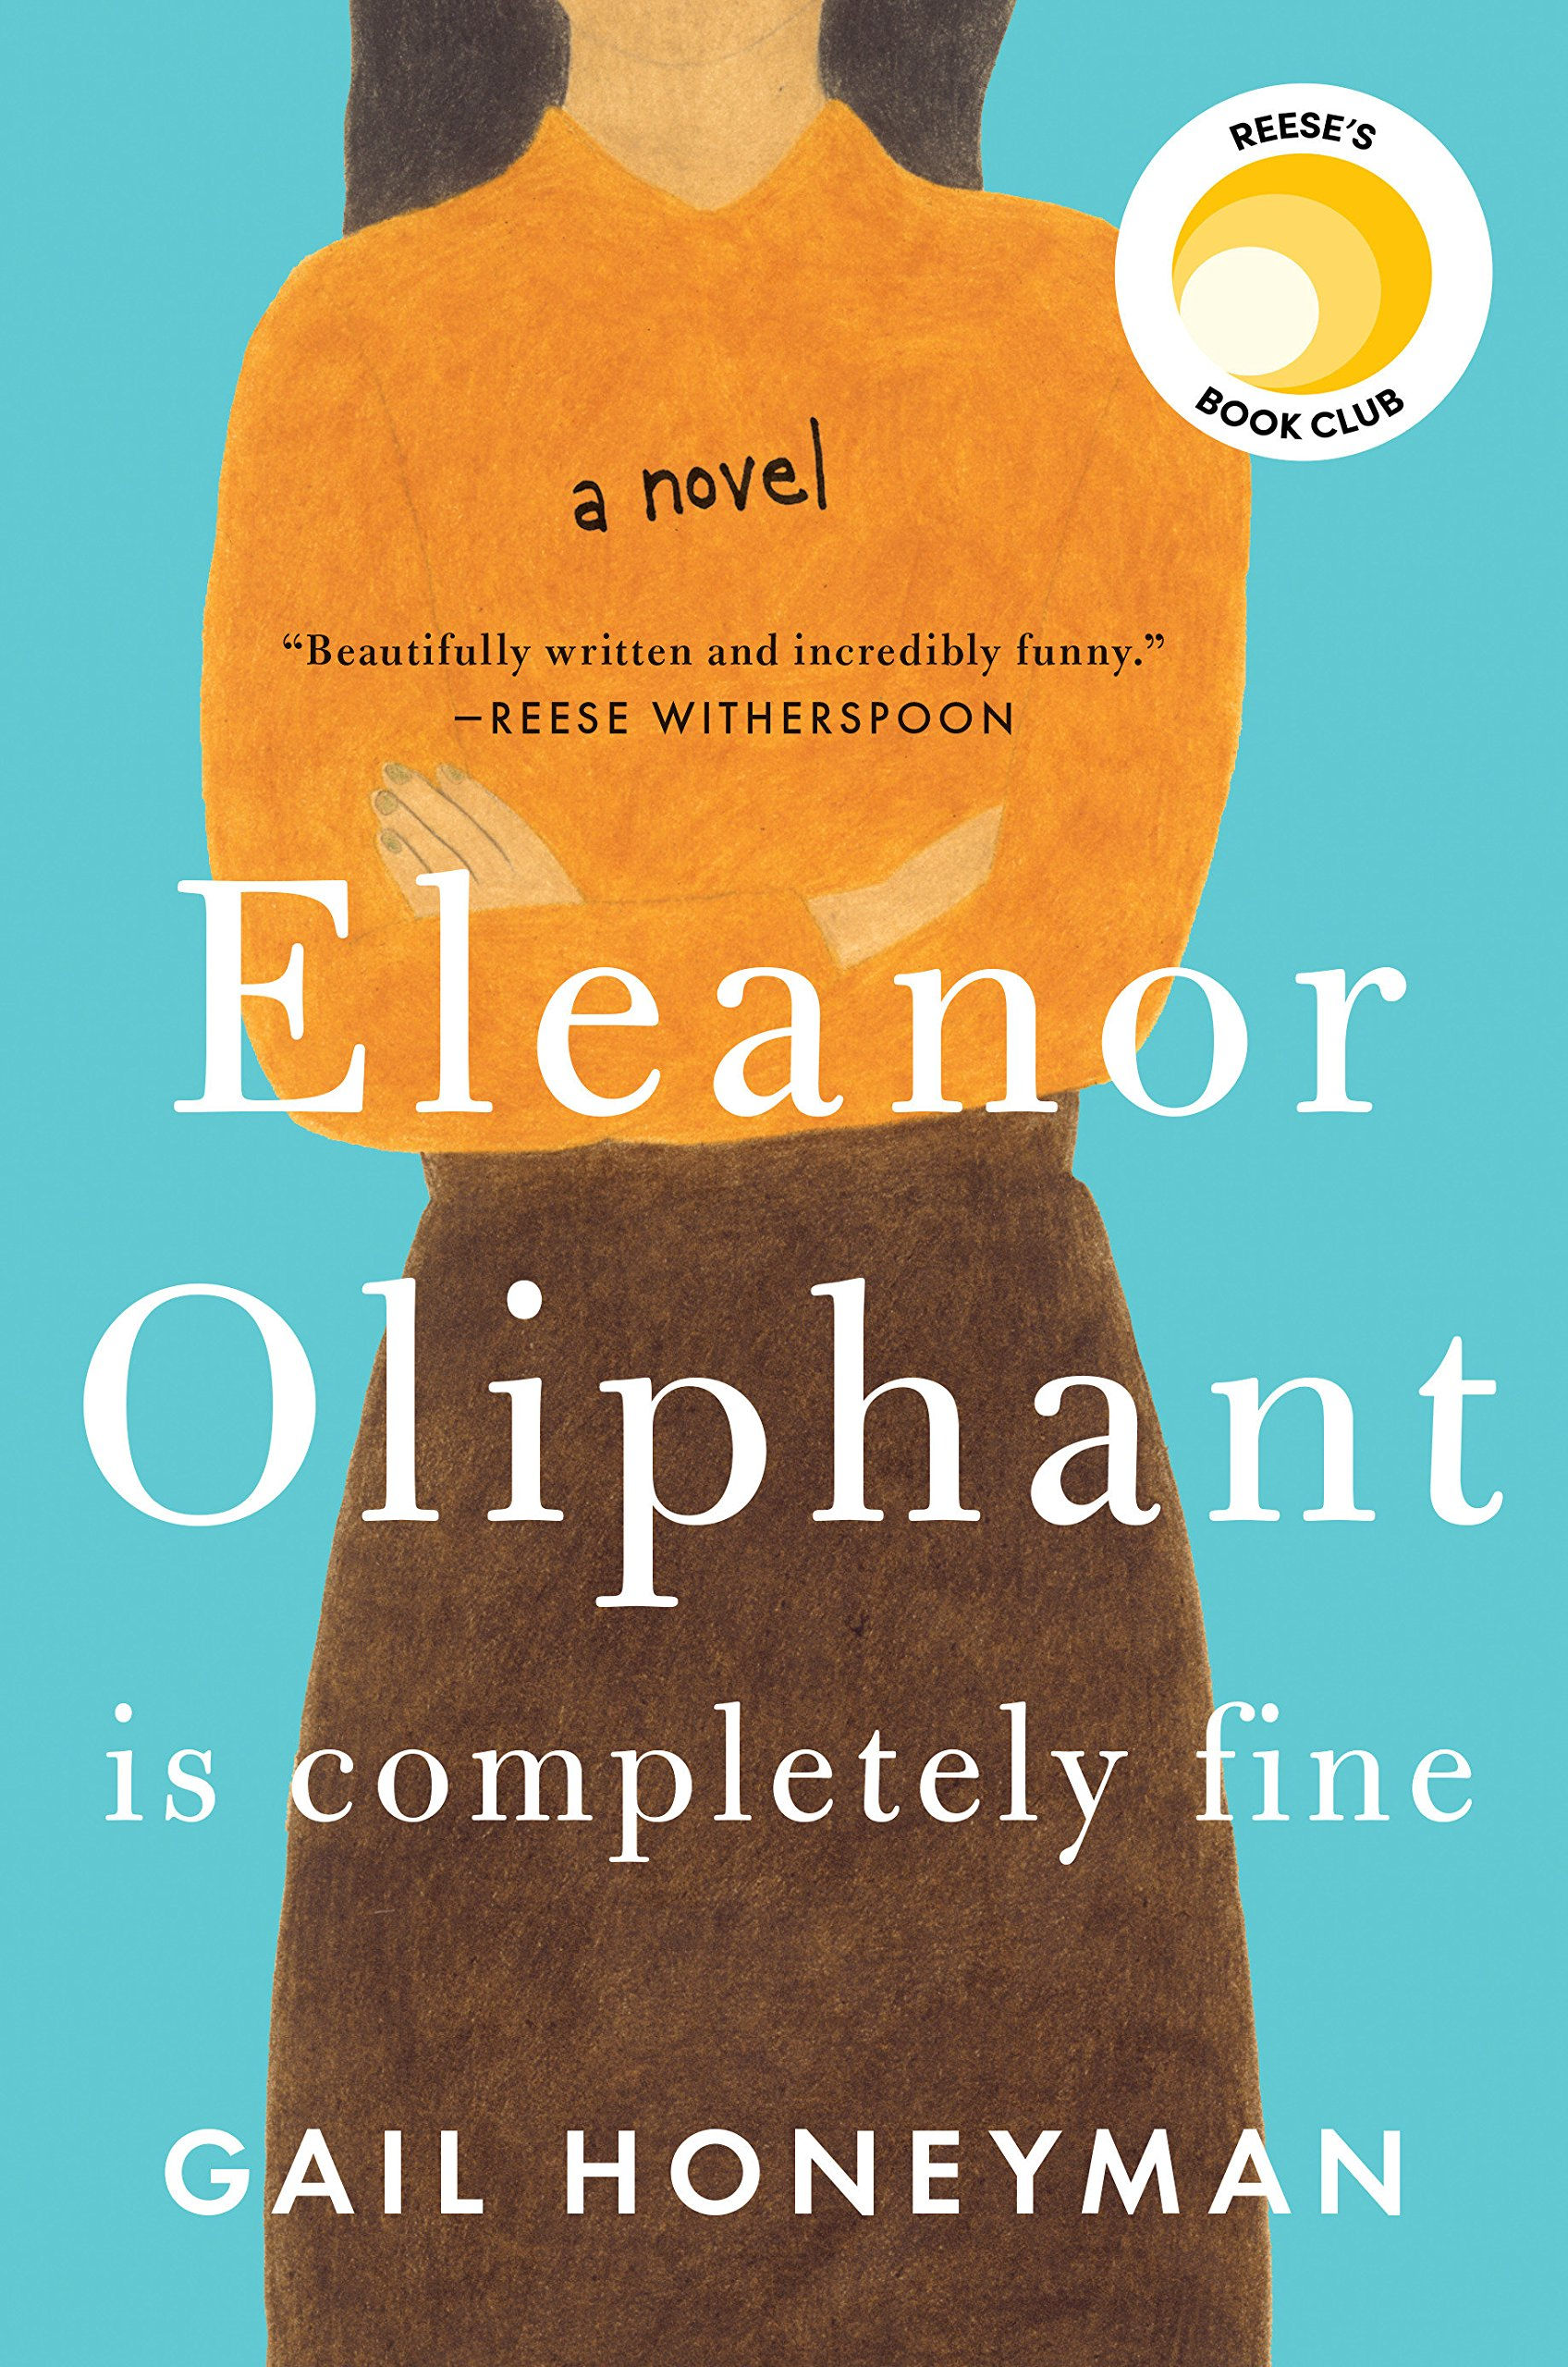 Dumbo Lit Book Club: Eleanor Oliphant is Completely Fine by Gail Honeyman